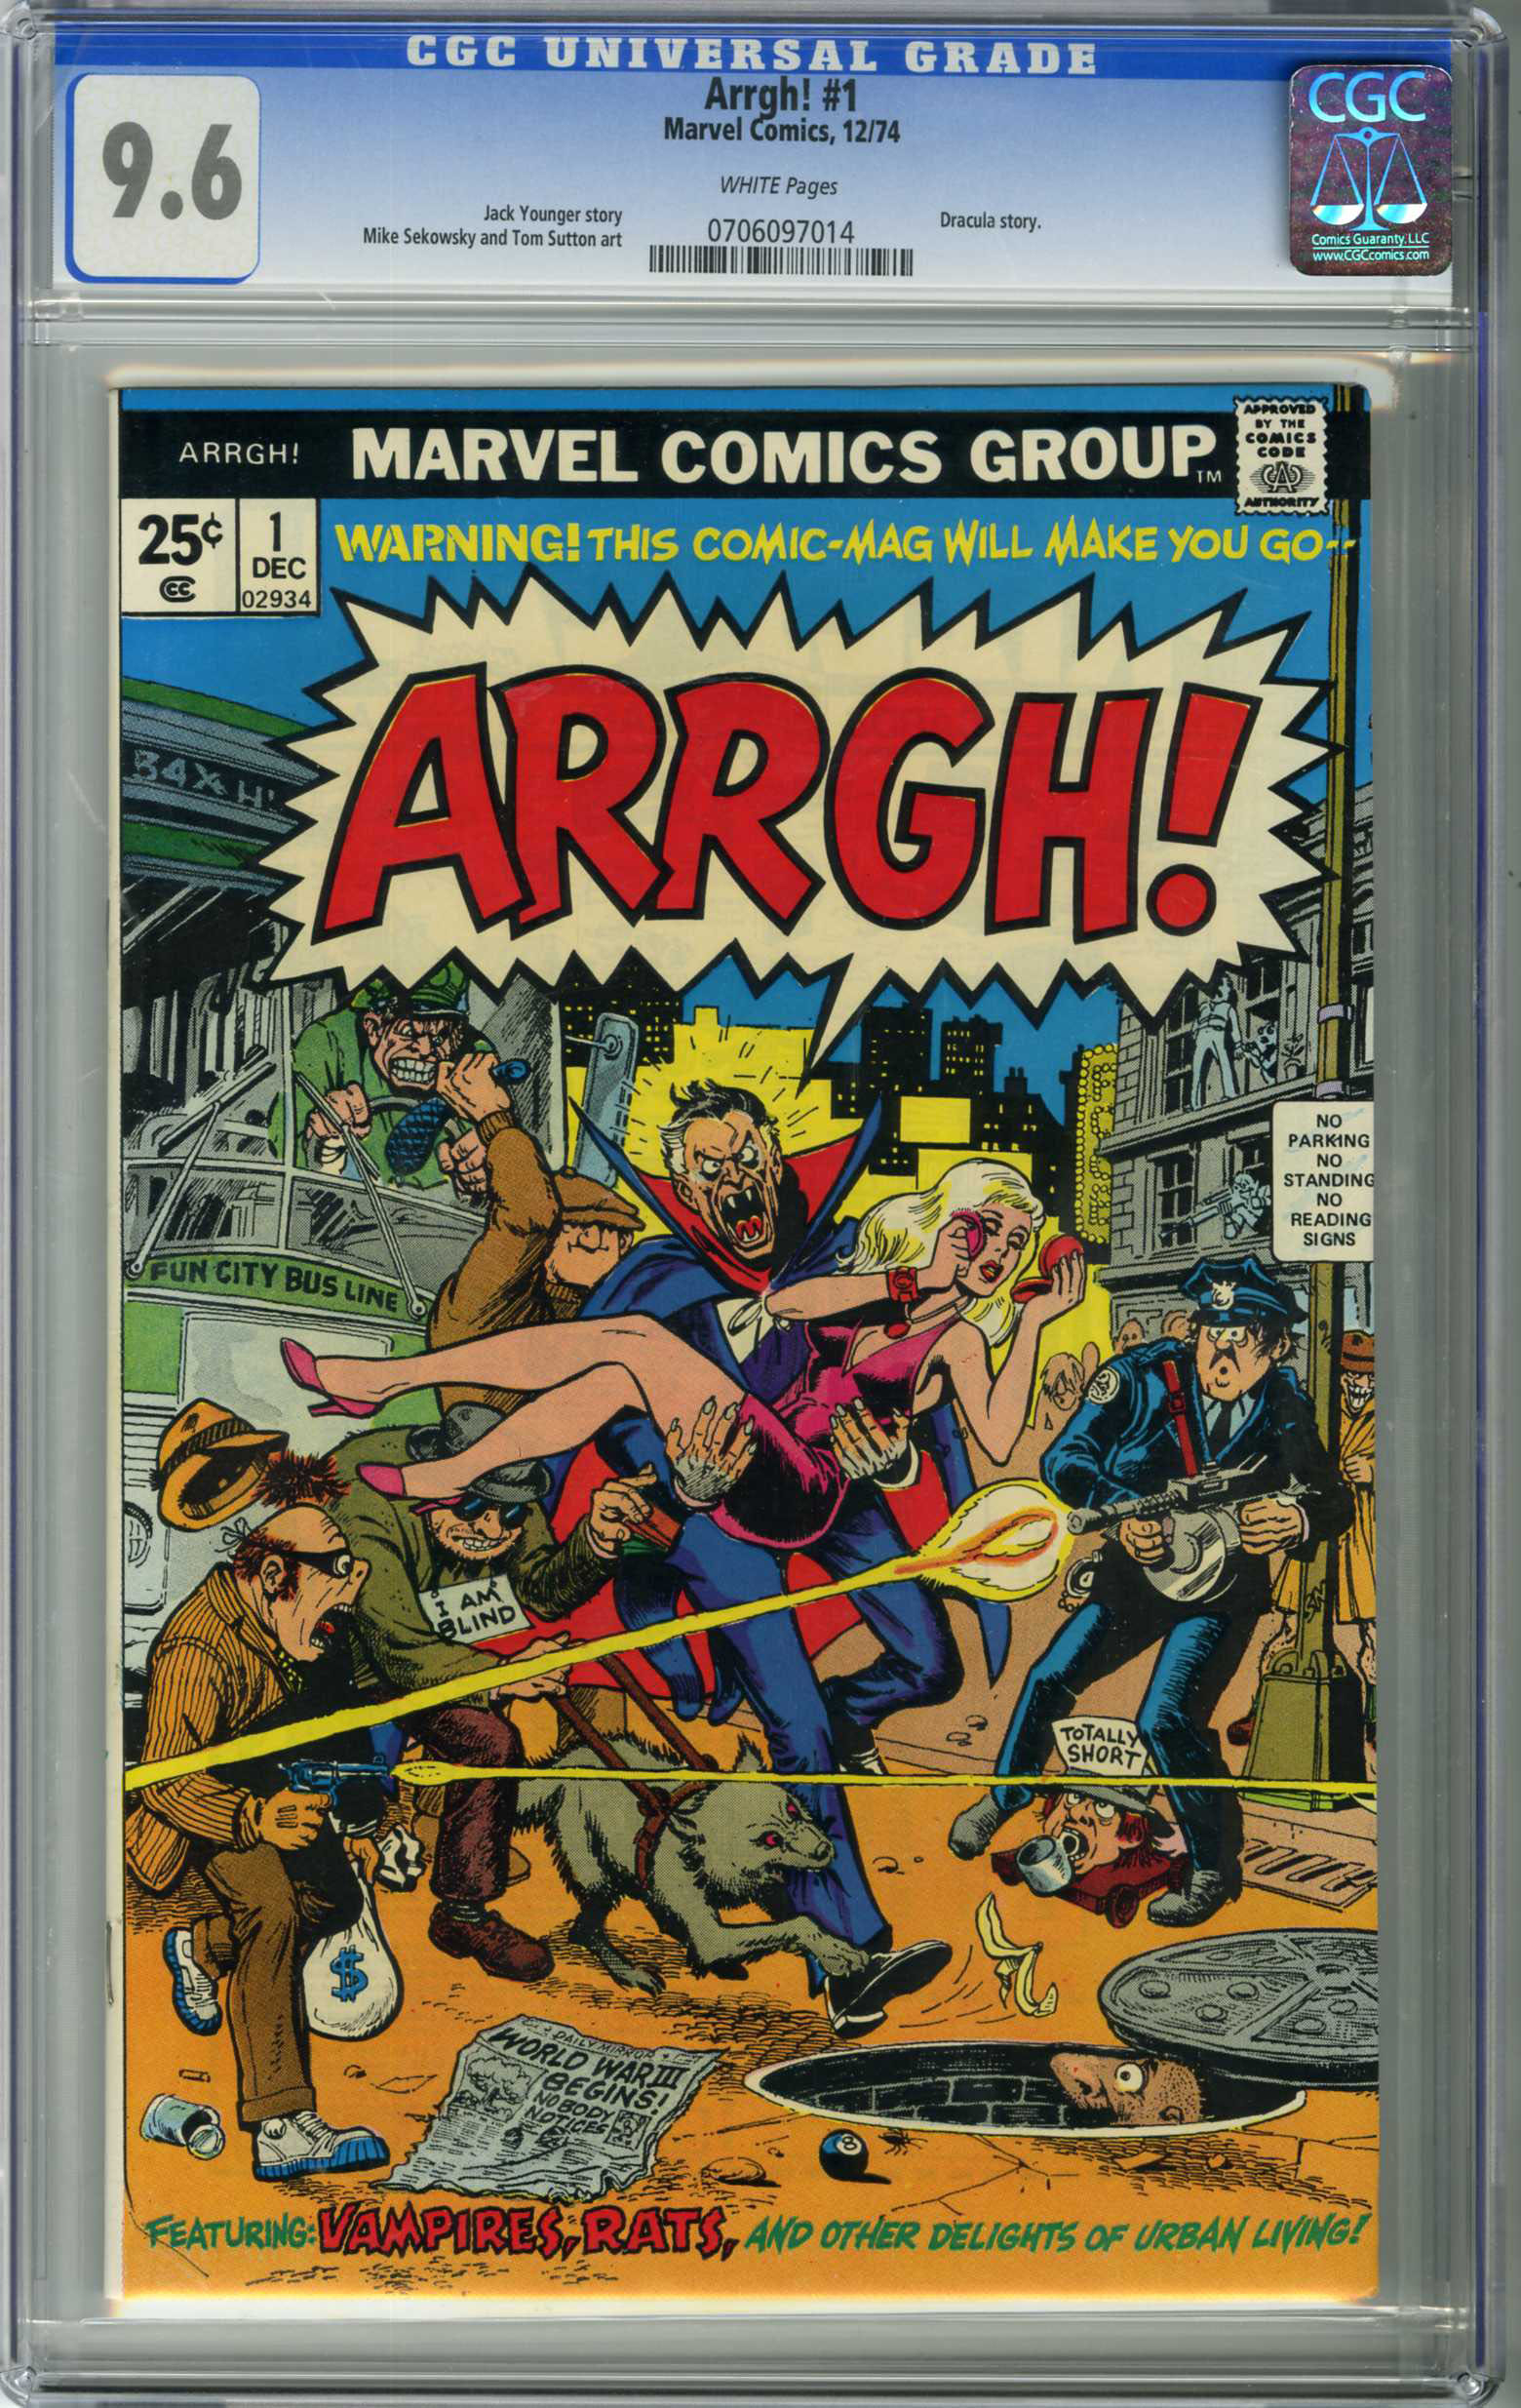 ARRGH! #1 (1974) CGC NM+ 9.6 WHITE Pages ORIGIN / DRACULA COVER AND STORY